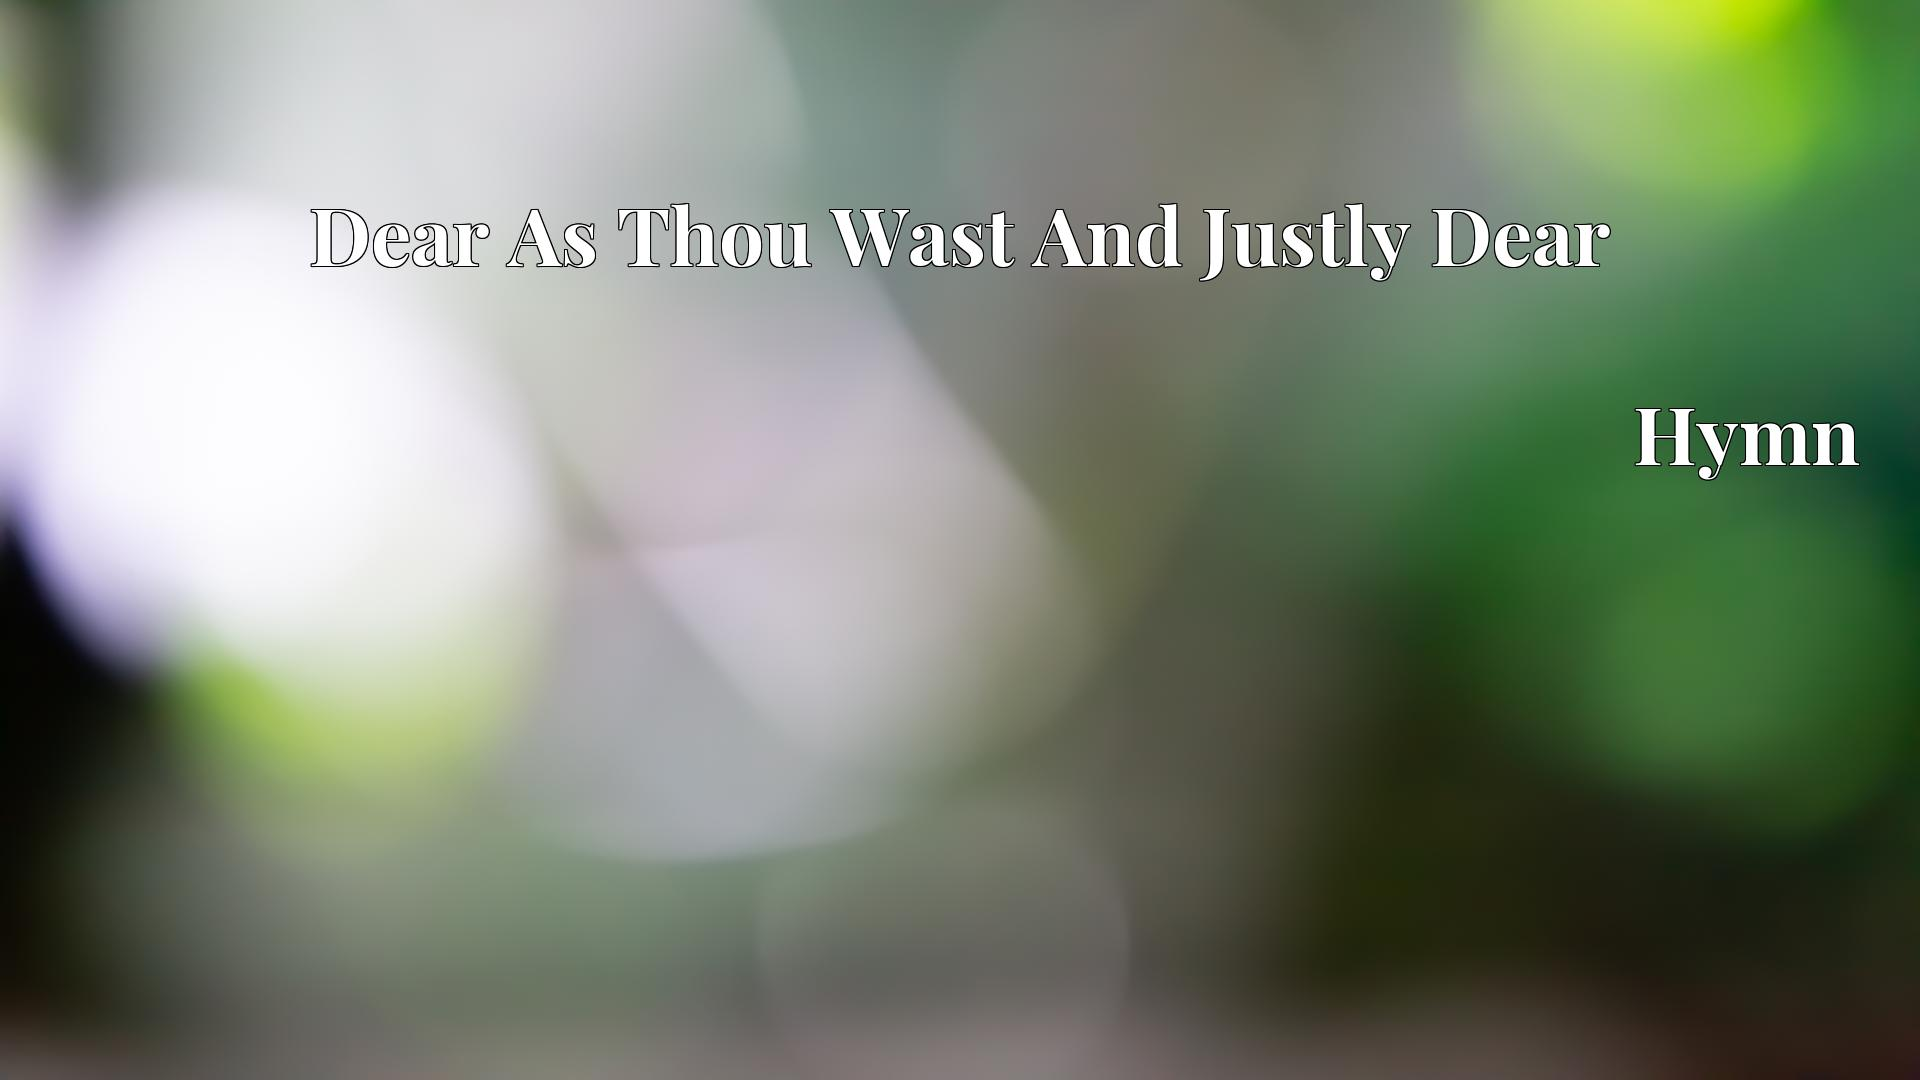 Dear As Thou Wast And Justly Dear - Hymn